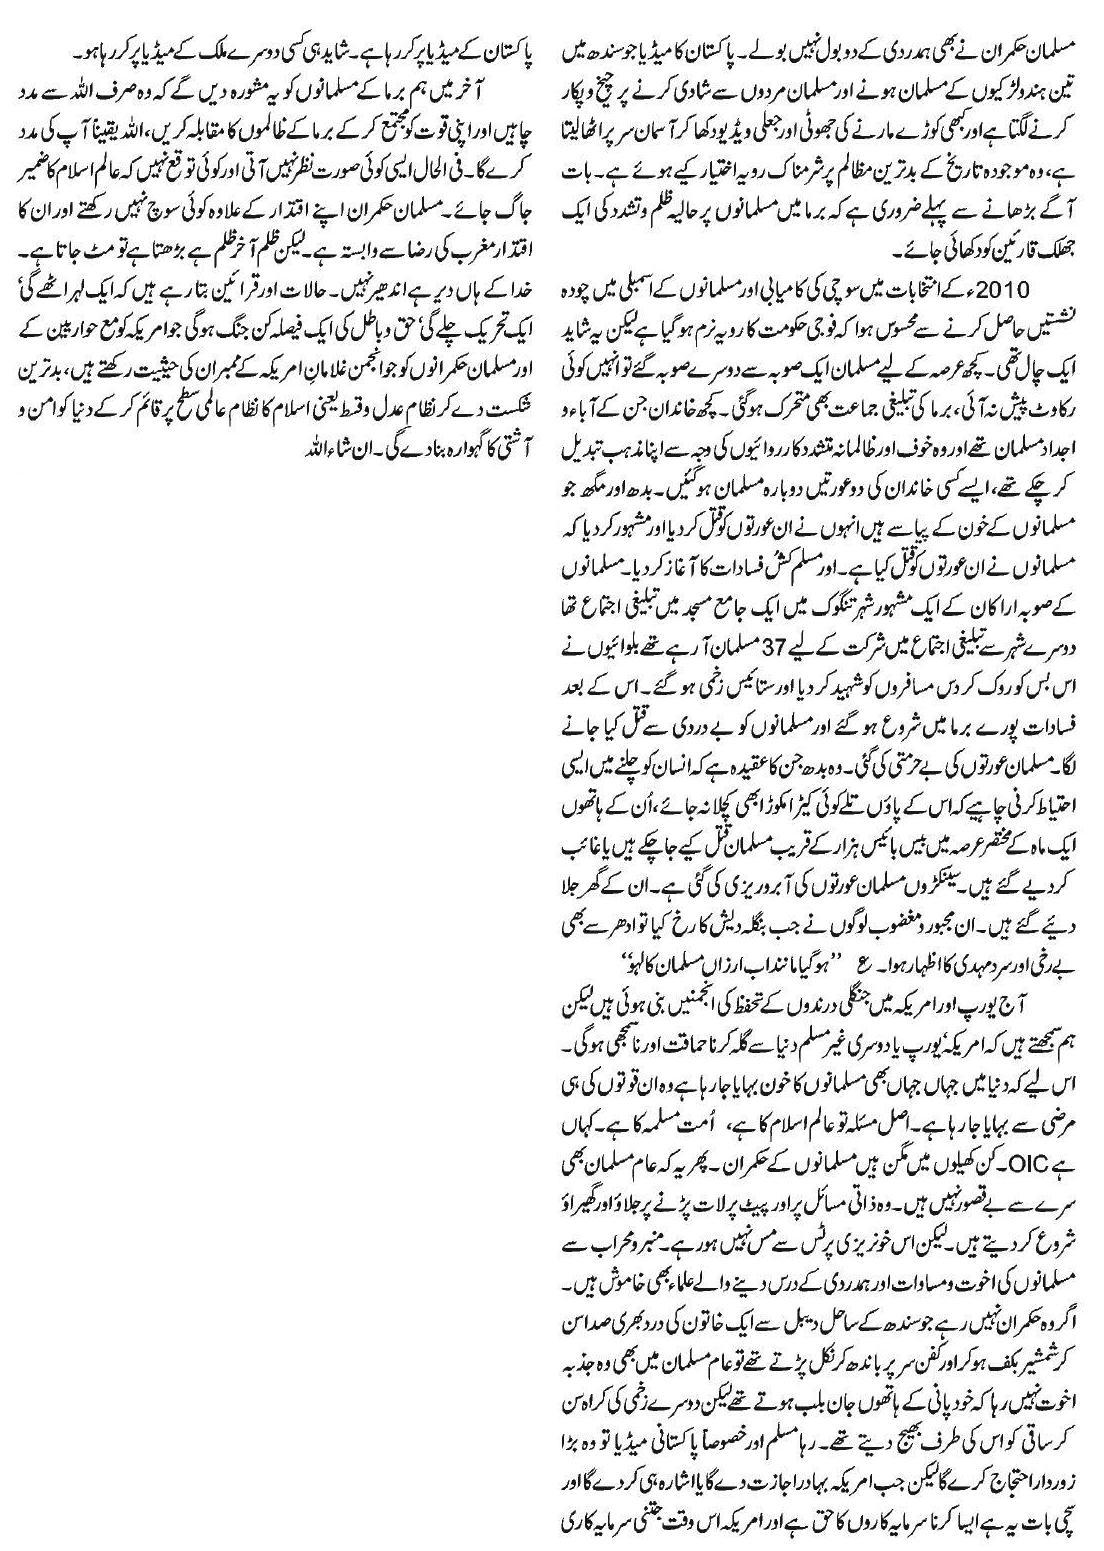 scientific inventions essay in urdu We live in the age of science people live, move and think in terms of science related articles: an essay on the misuse of scientific knowledge.